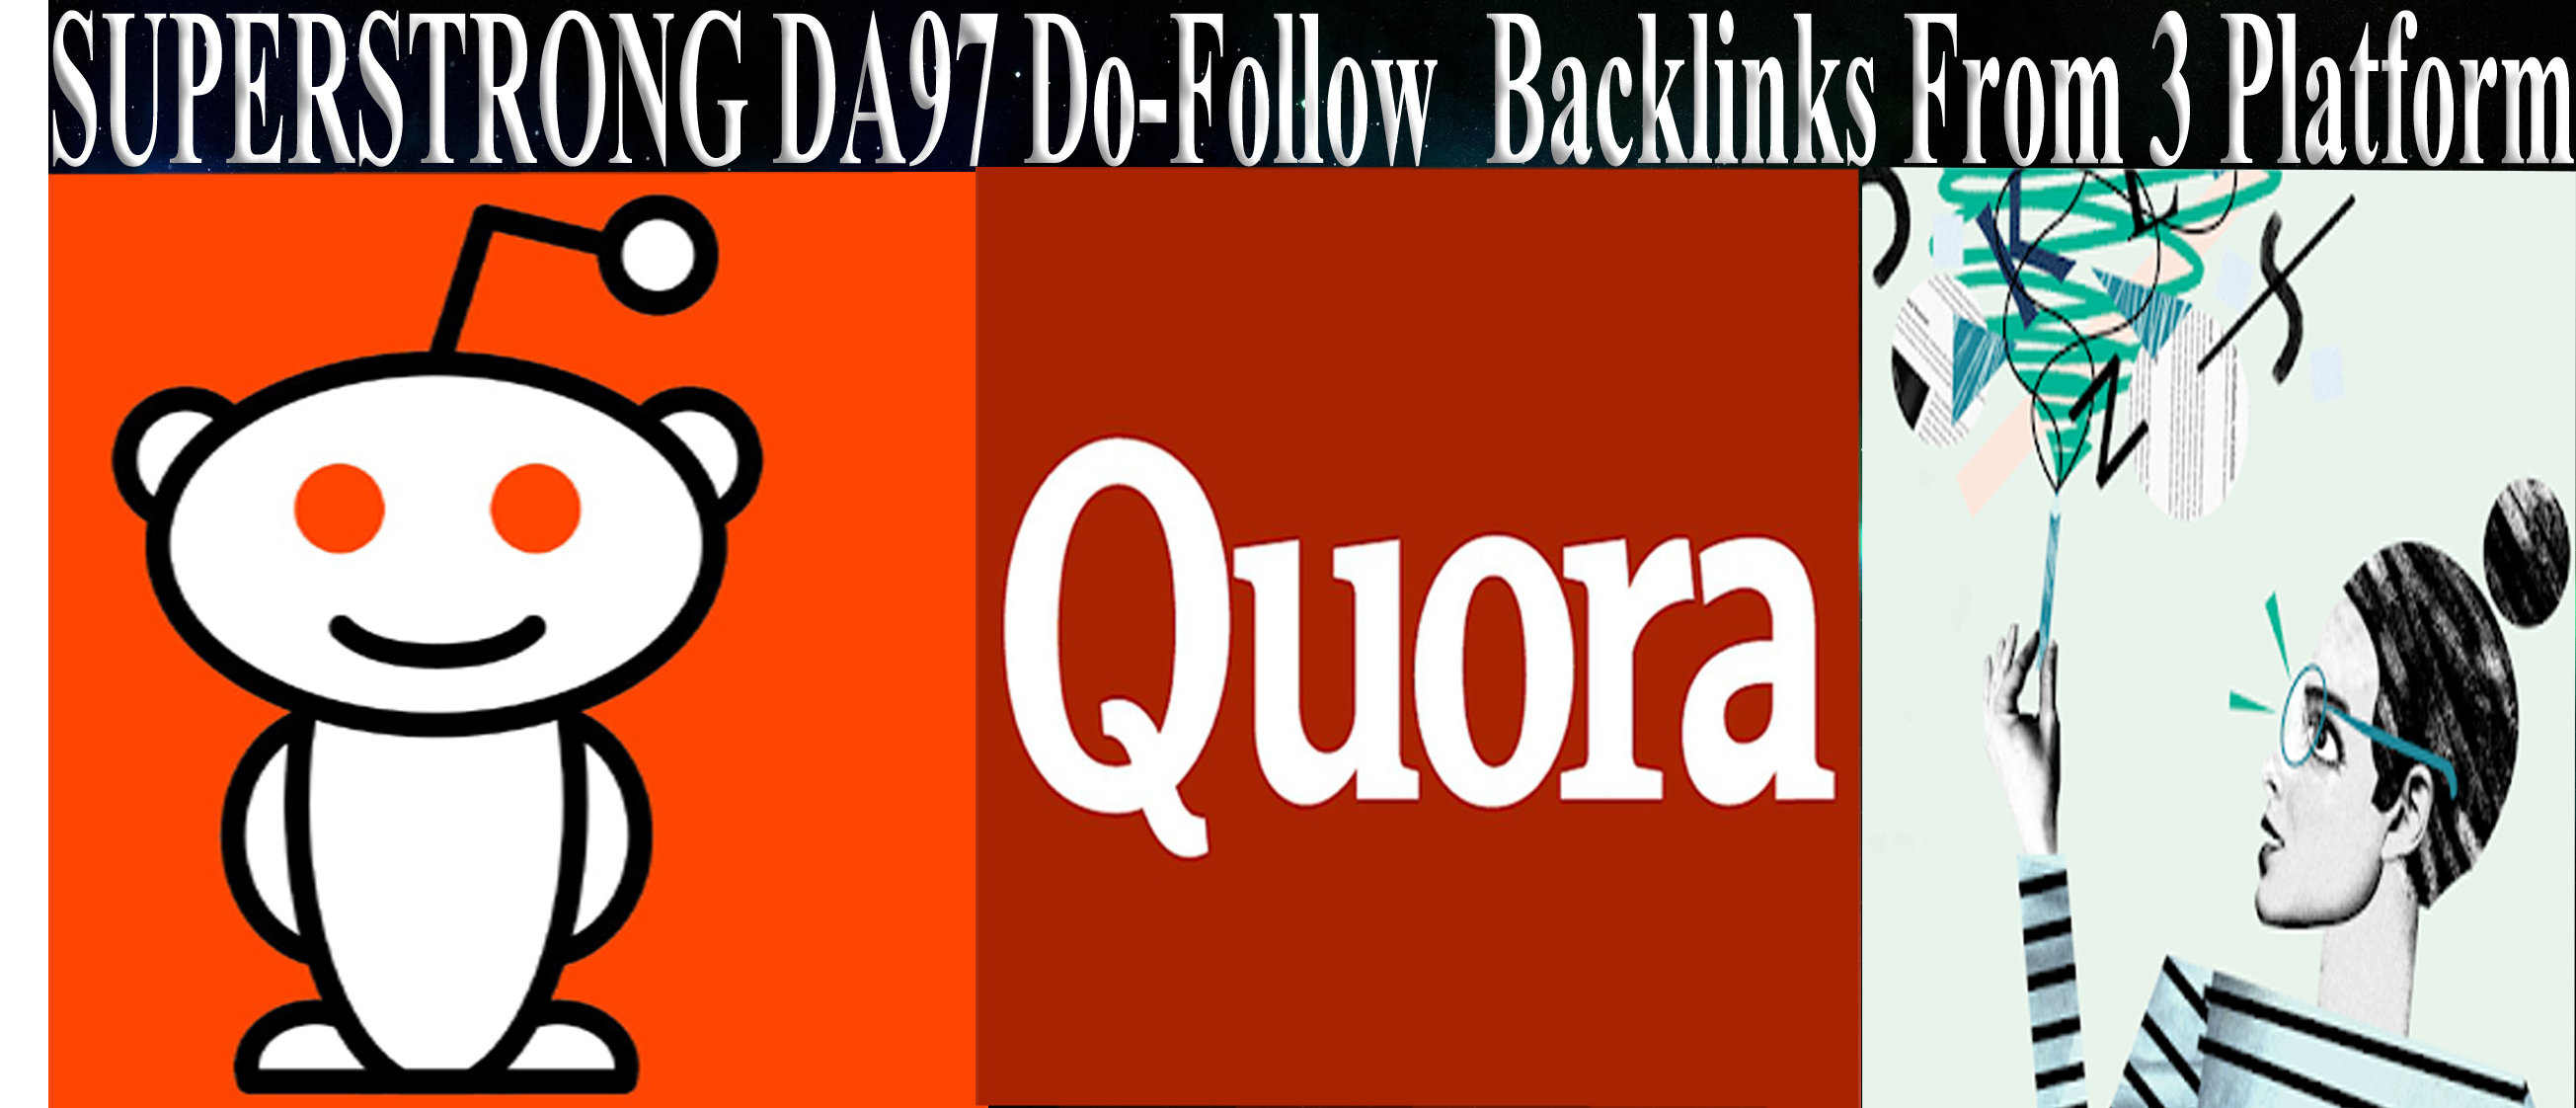 SUPERSTRONG DA97+ Do-Follow Backlinks From 3 Platform